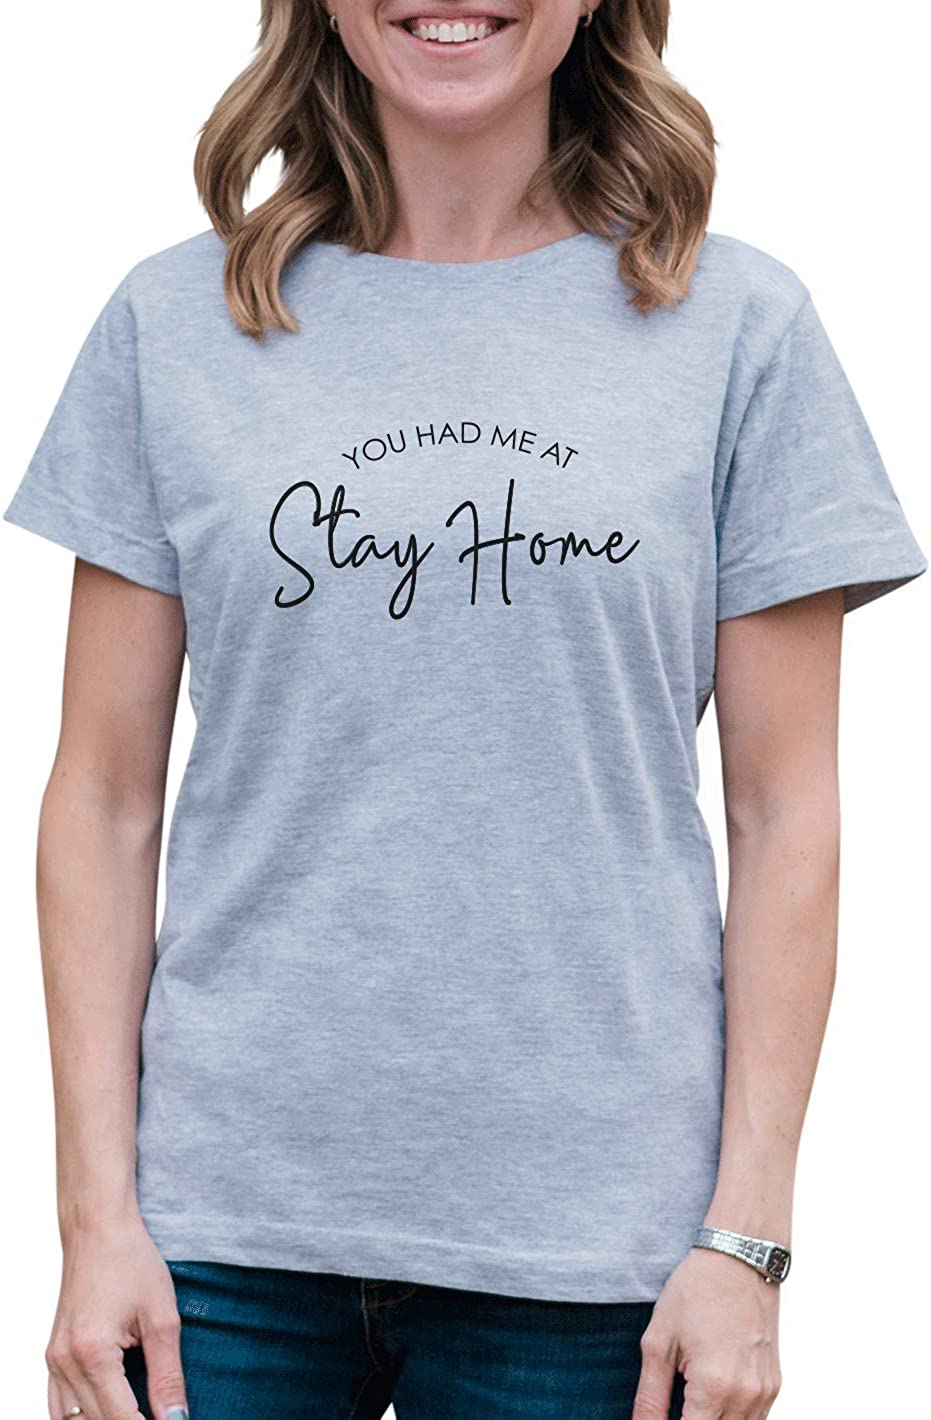 7 ate 9 Apparel Women's You Had Me at Stay Home Quarantine Grey T-Shirt